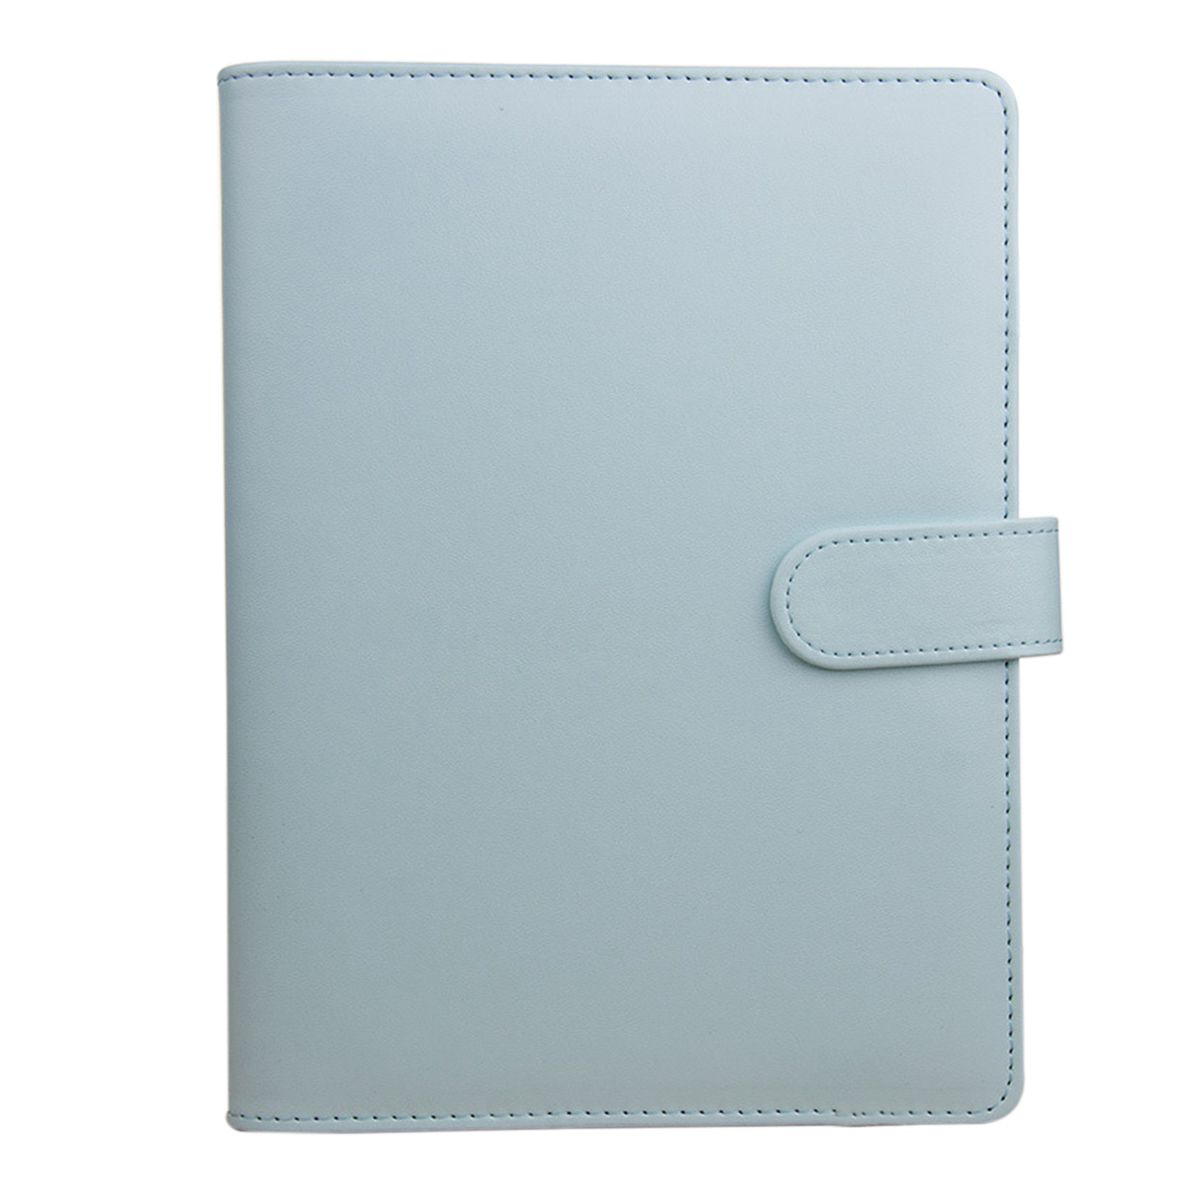 BLEL Hot A5 Weekly Monthly Planner Diary Classic Loose-Leaf-Ring-Binder Notebook Cover, Blue a5 planner agenda pu loose leaf weekly monthly journal diary notebook blue pu leather soft cover